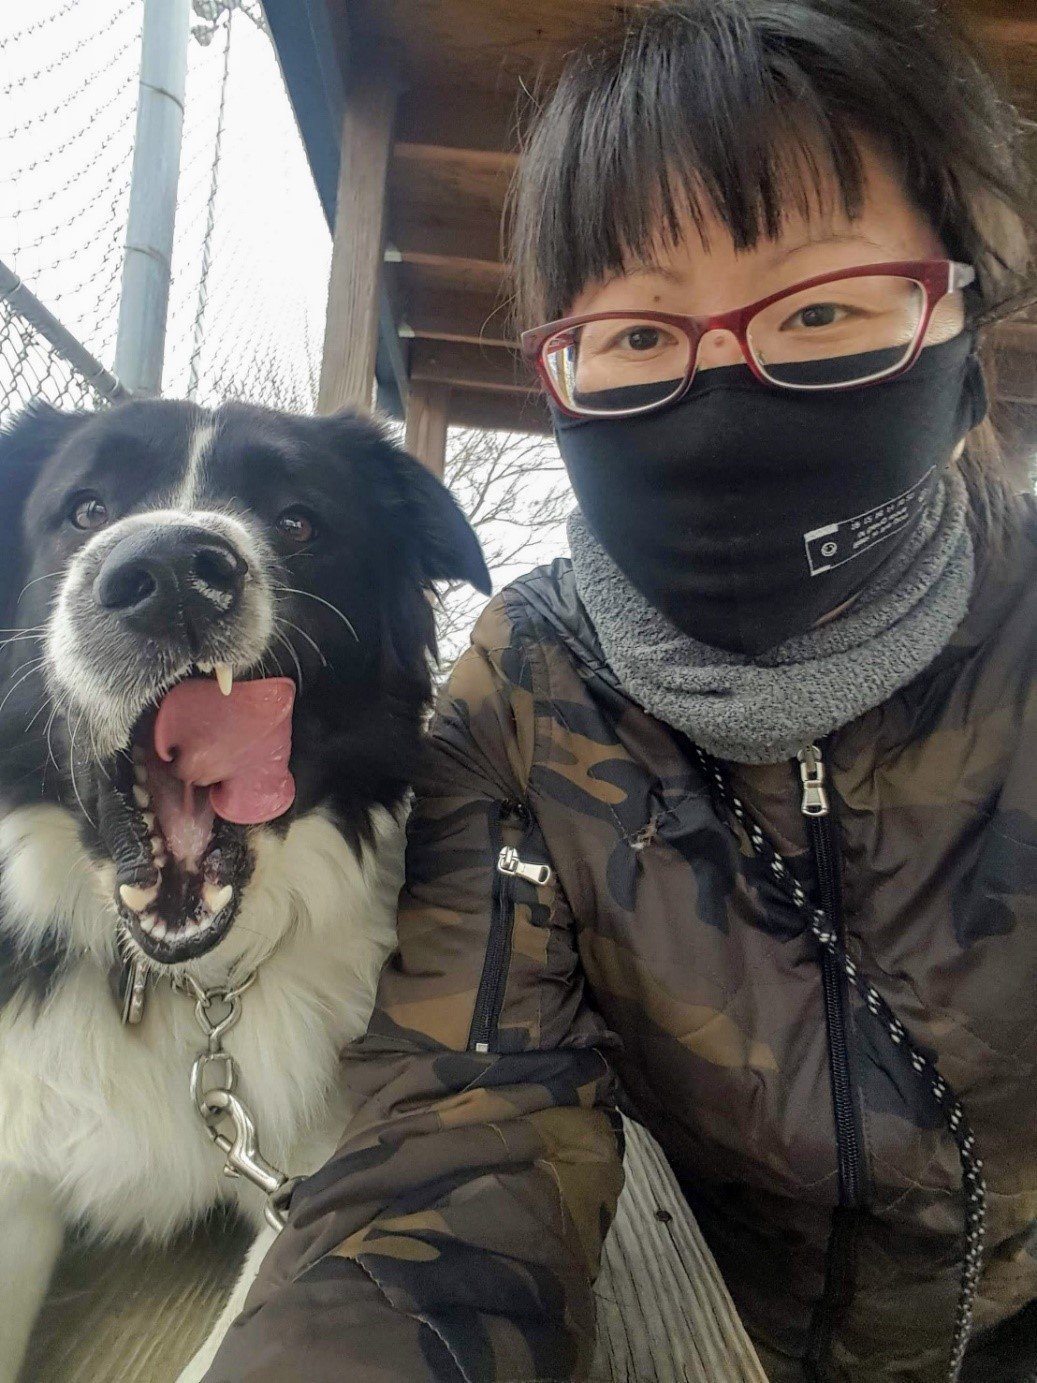 A masked person next to a black and white dog licking its jowls.